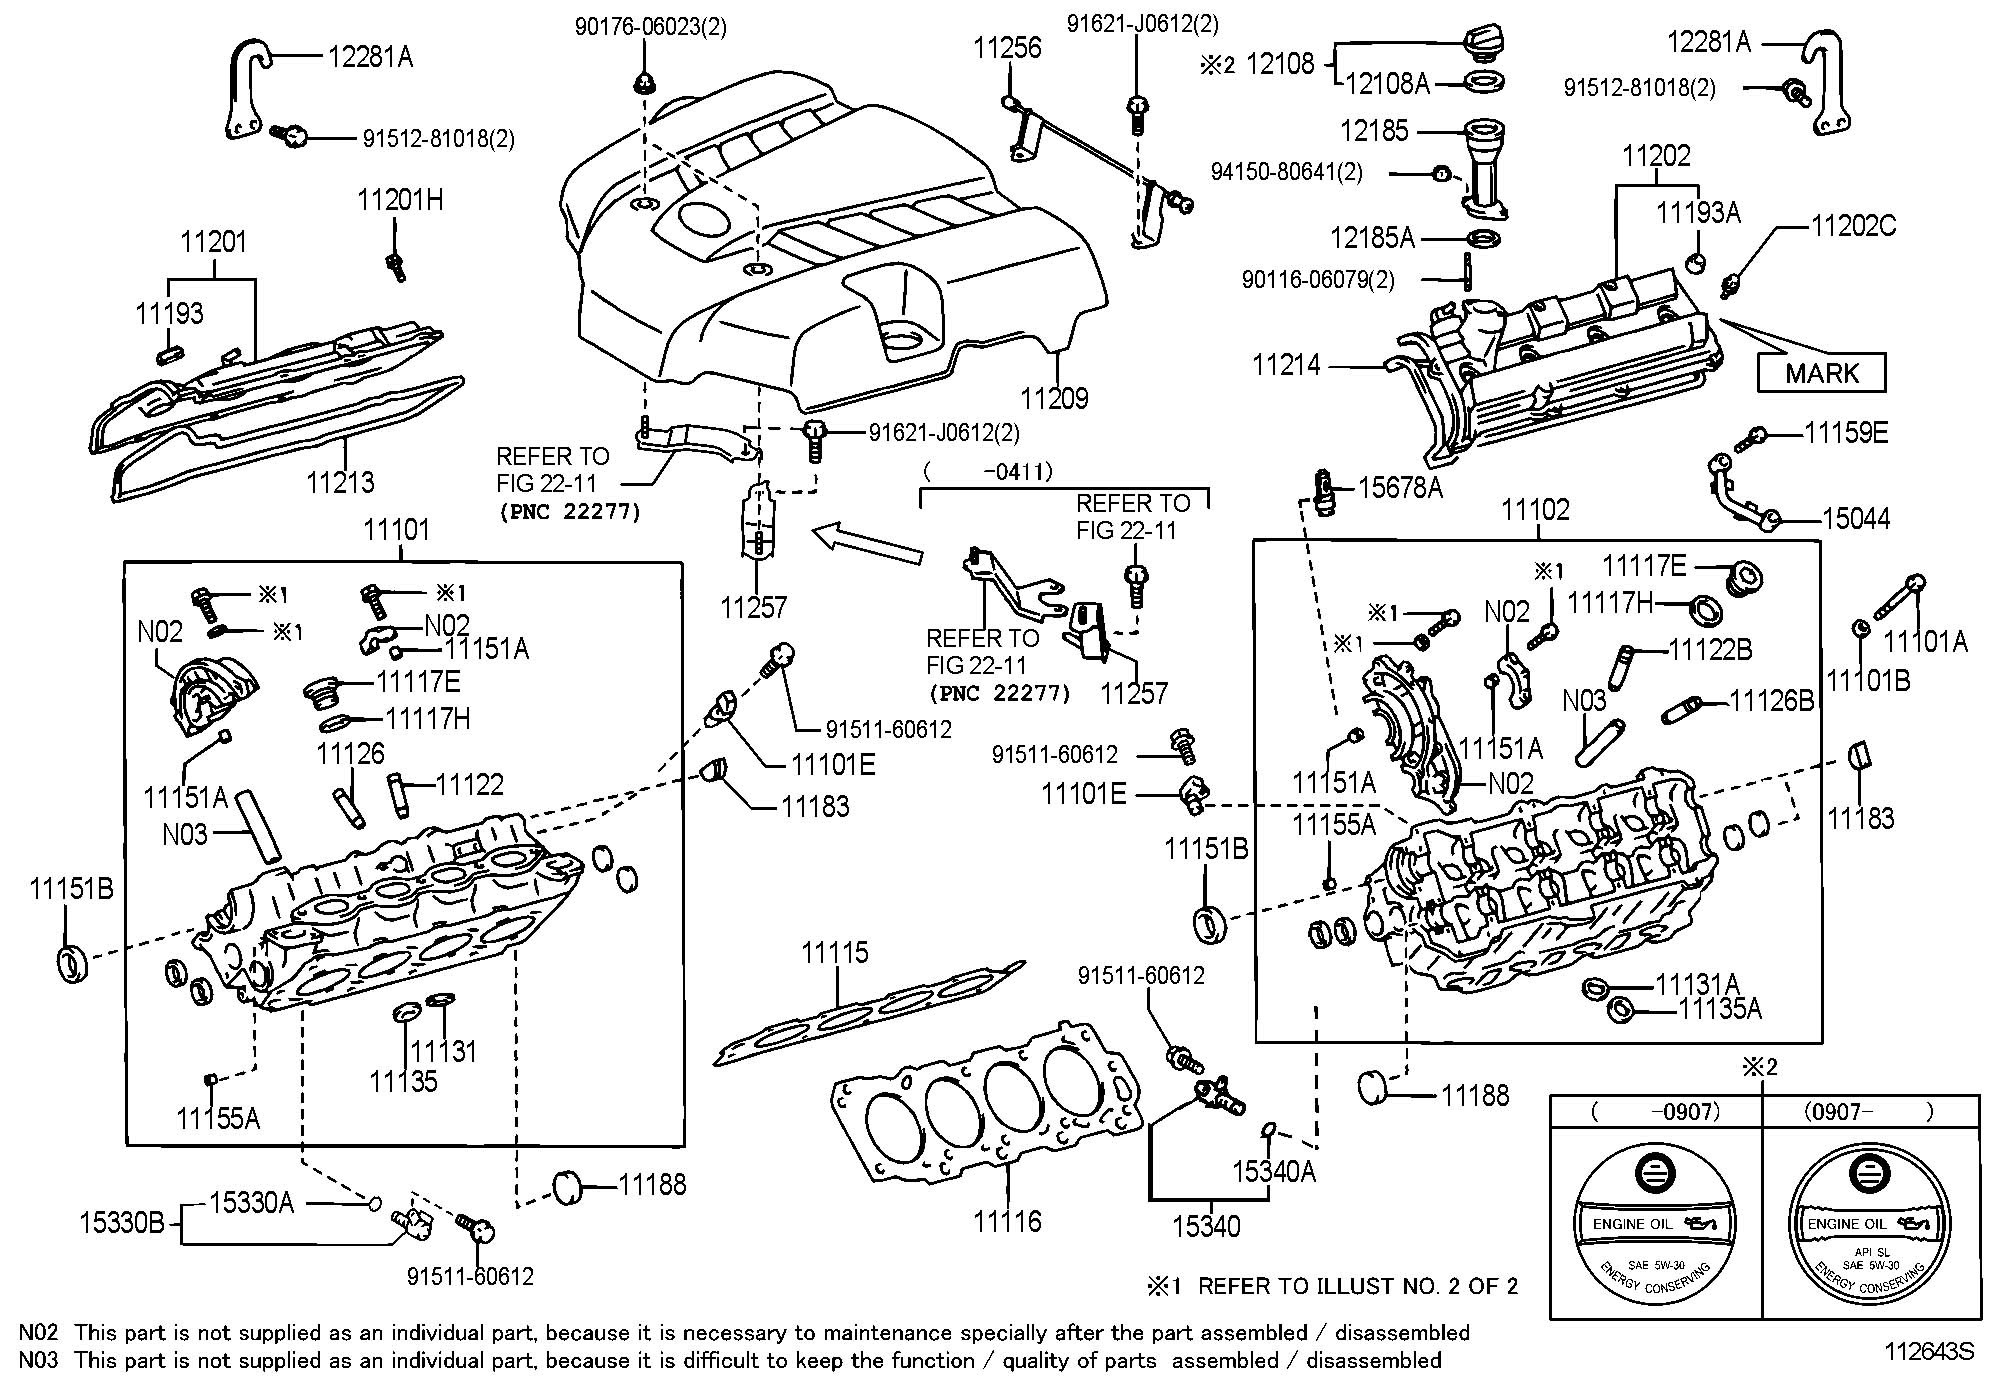 2005 lexus rx330 fuse box diagram  u2022 wiring diagram for free